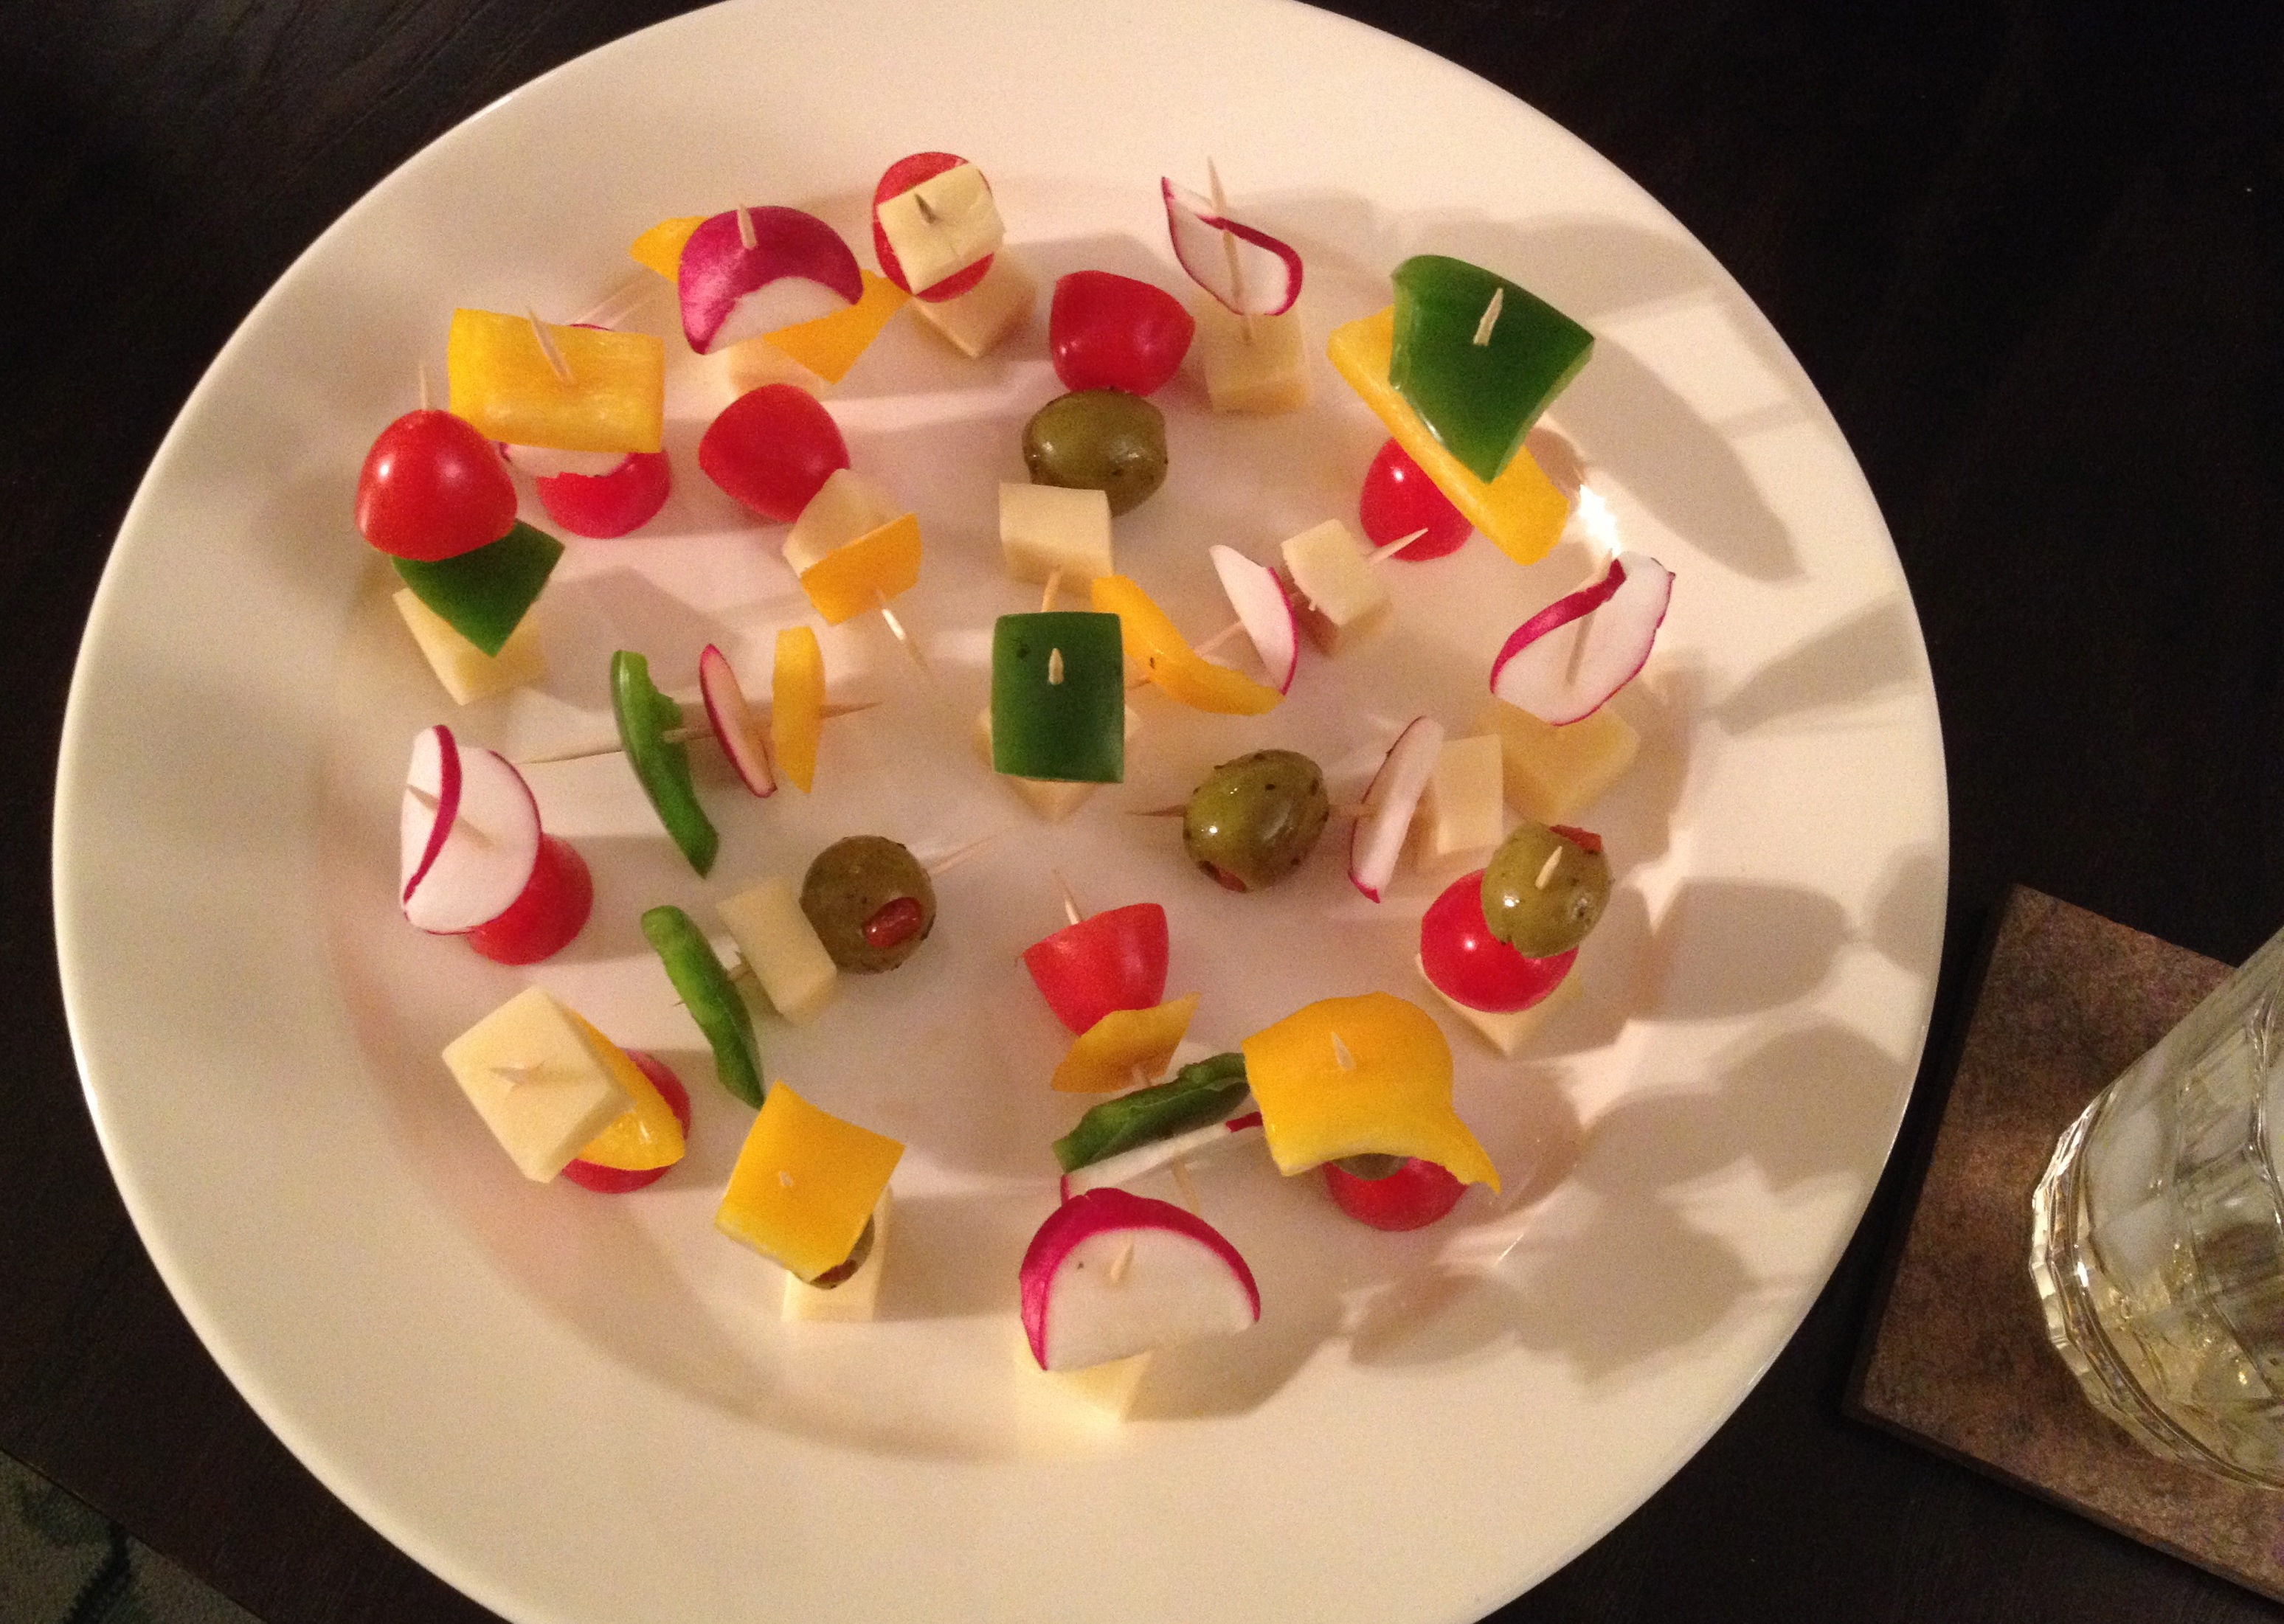 Small bites made up of gouda cheese cubes with radishes, green pepper, olives,  yellow pepper and cherry tomatoes on toothpicks